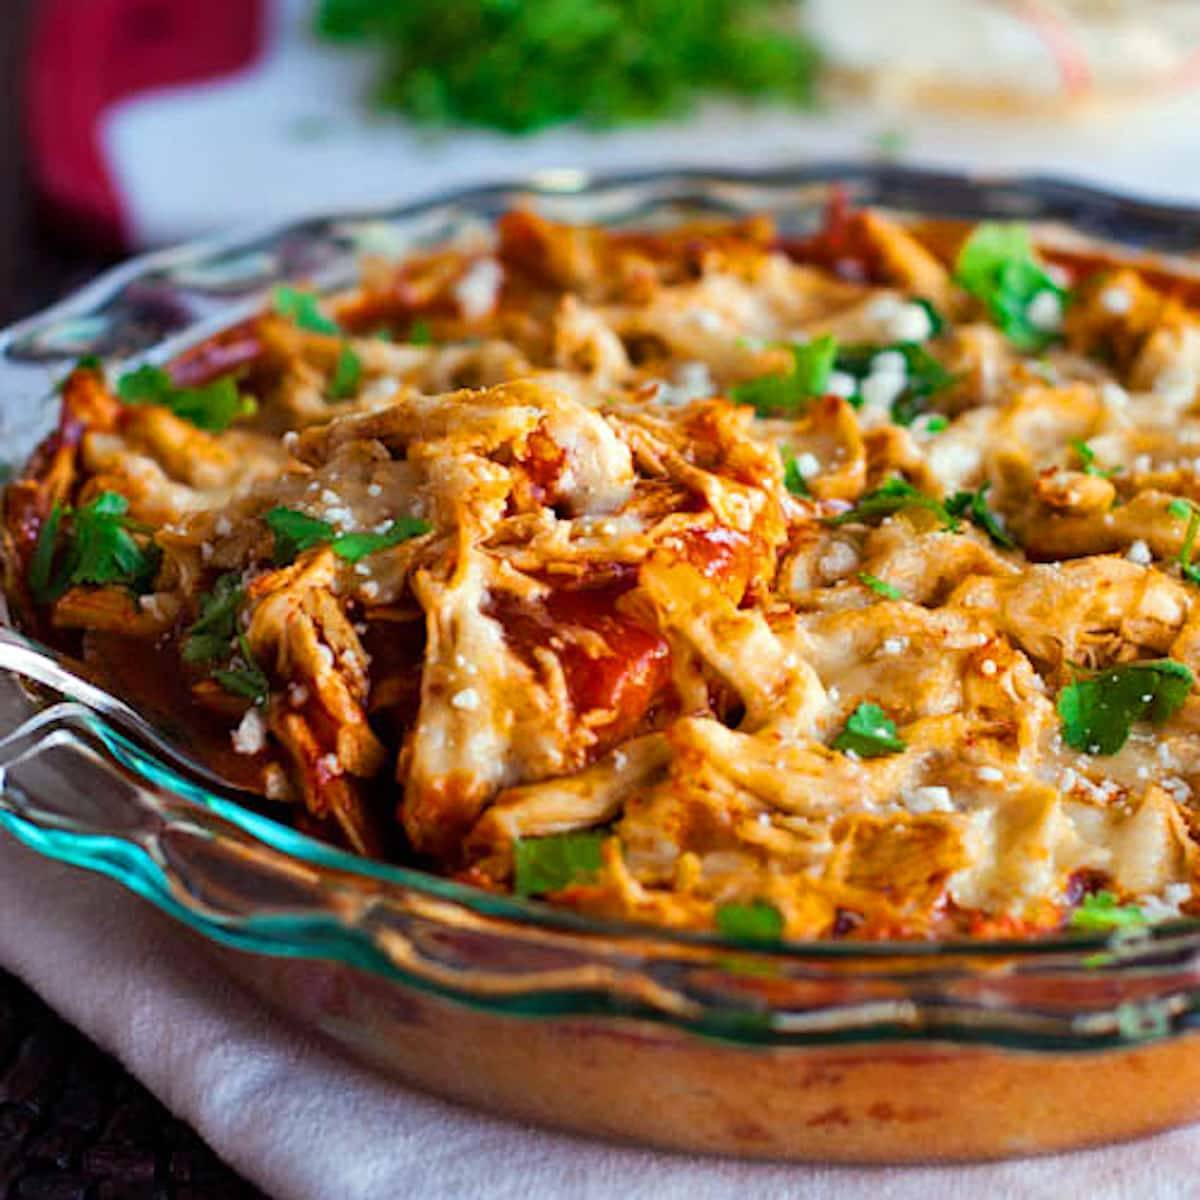 Chicken tamale pie topped with shredded chicken, enchilada sauce, and cheese in a clear dish.